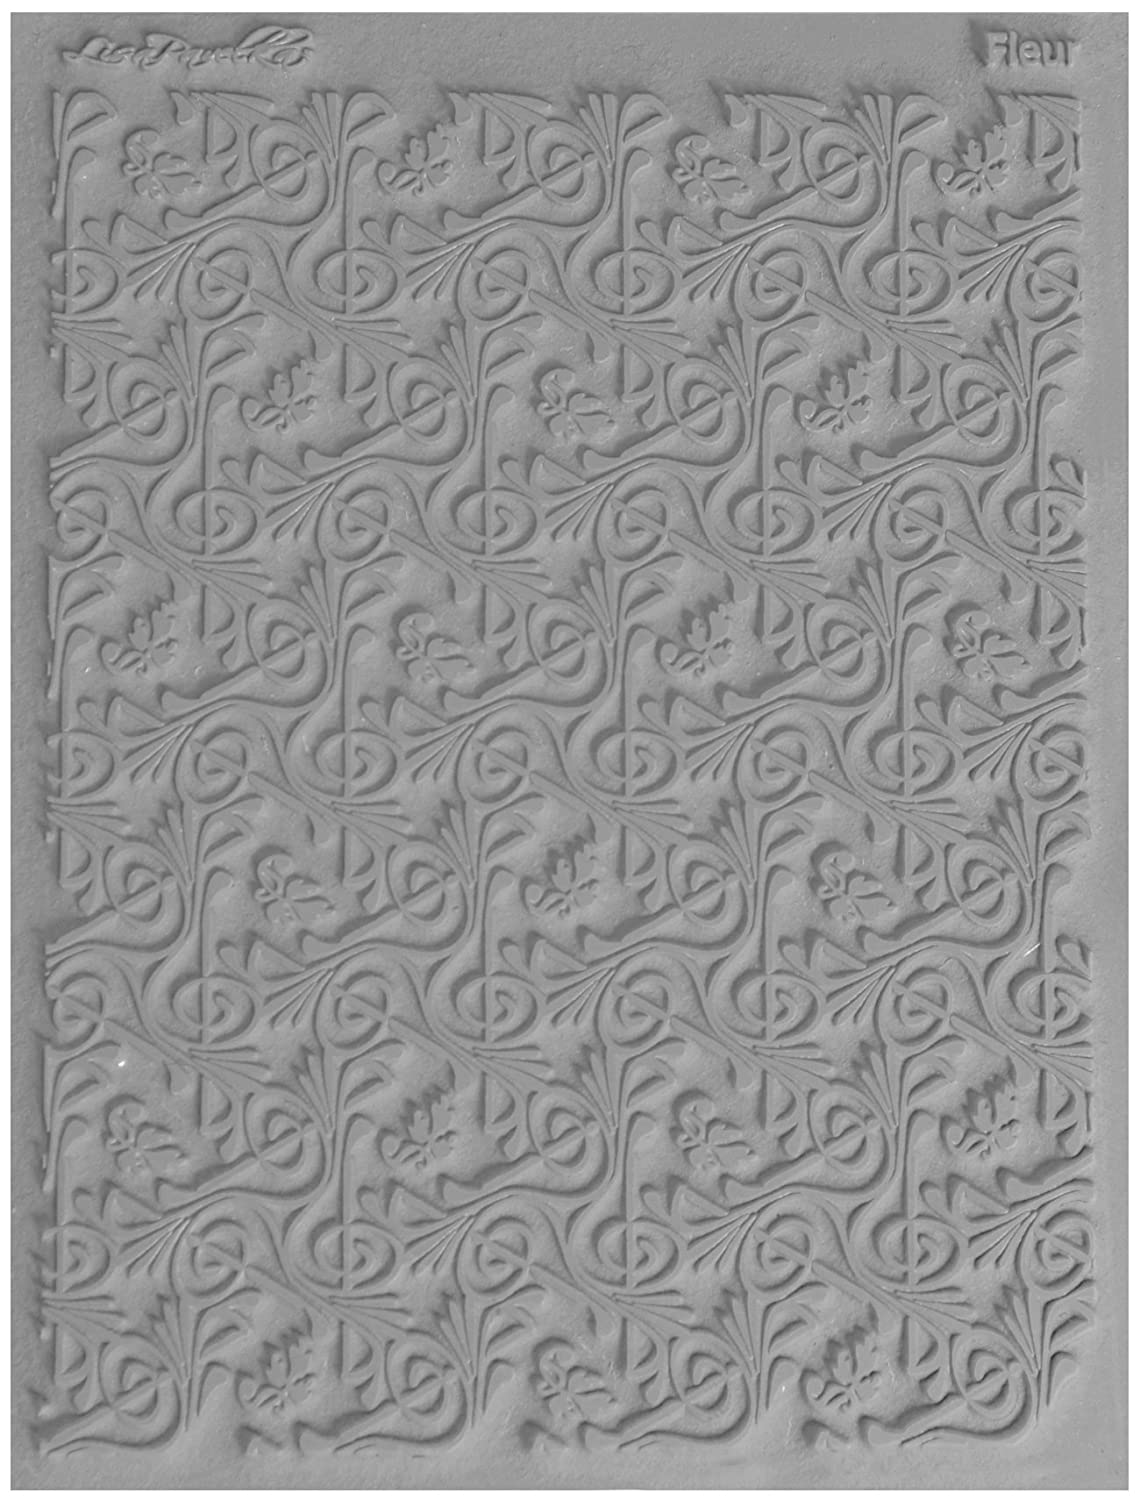 JHB International Inc Great Create Lisa Pavelka Individual Texture Stamp 4.25X5.5 1//Pkg-Fleur